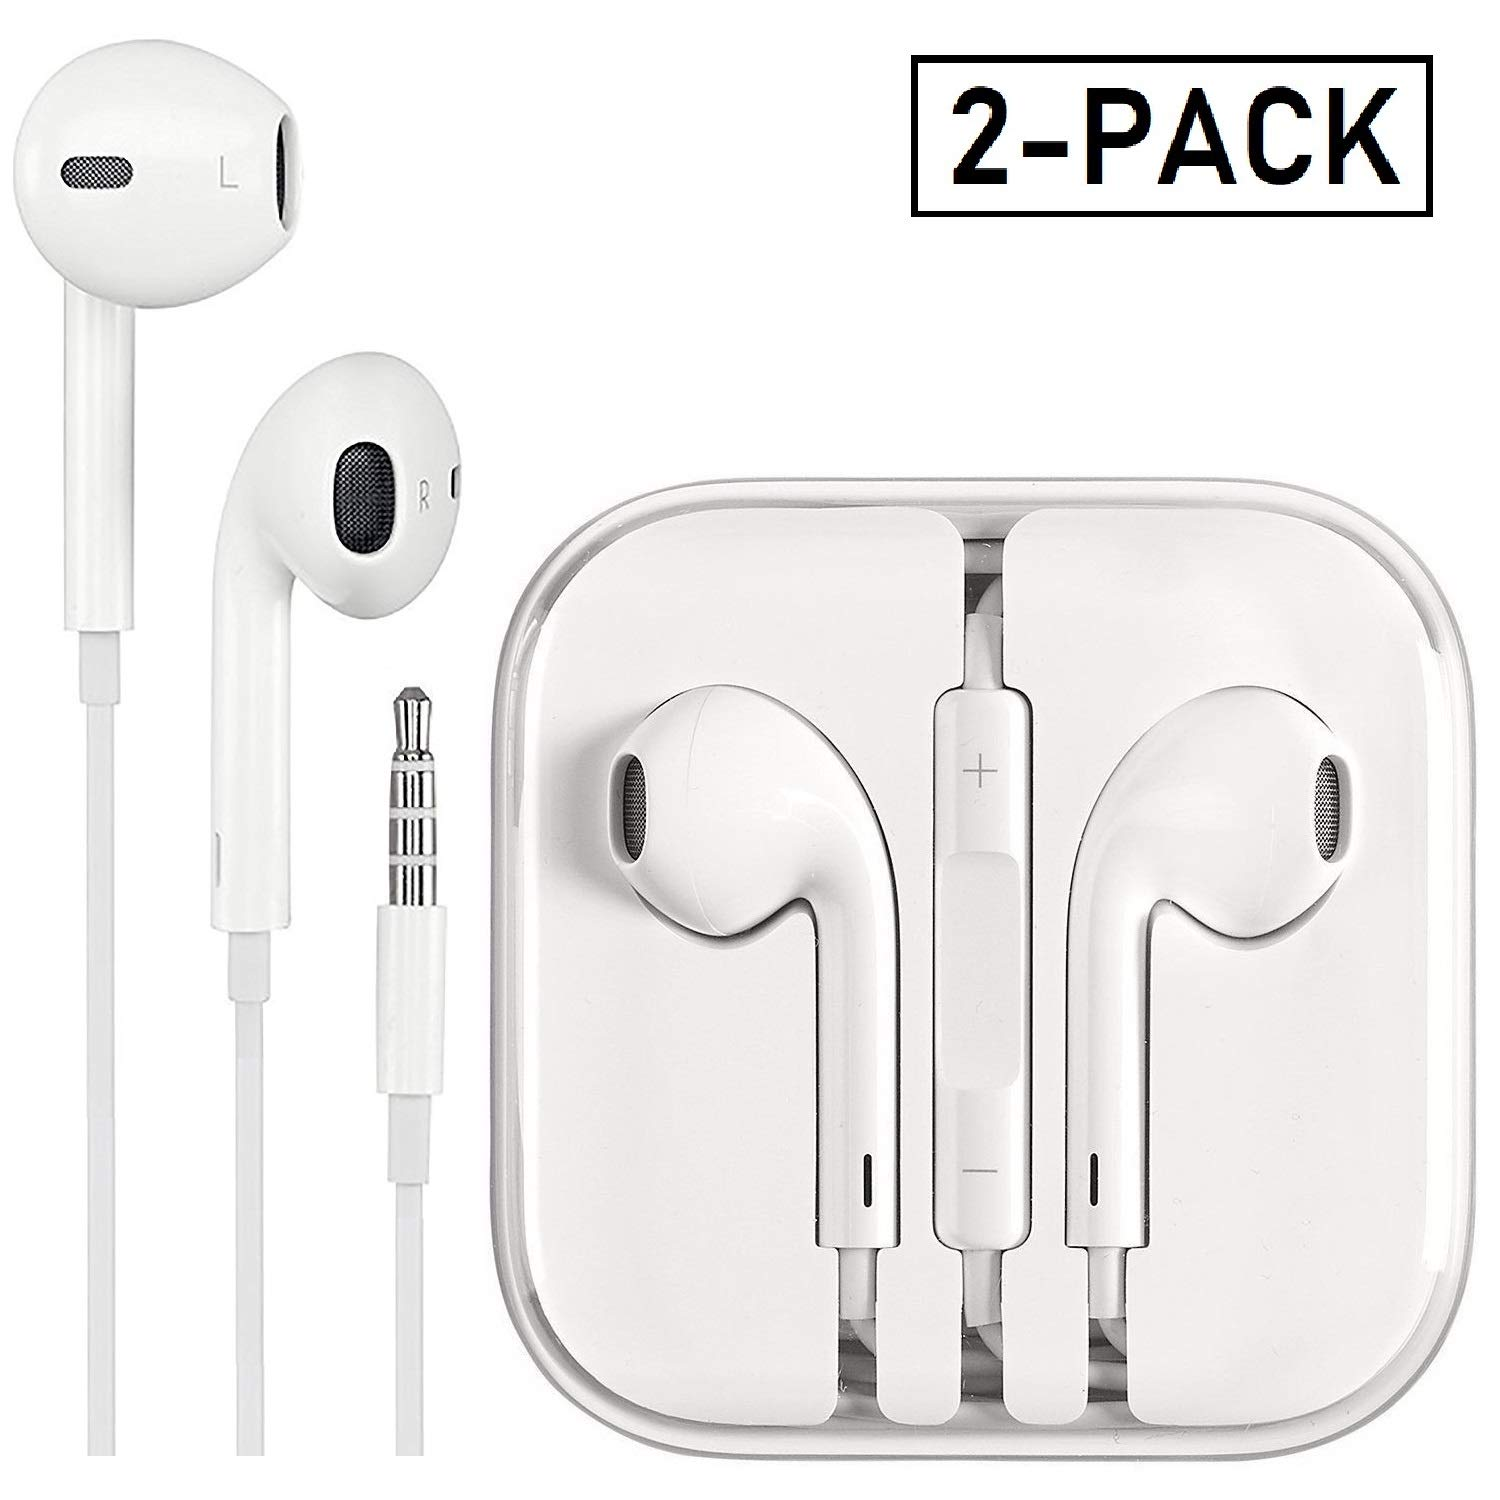 Earbuds/Earphones/Headphones, Premium in-Ear Wired Earphones with Remote & Mic Compatible Apple iPhone 6s/plus/6/5s/se/5c/iPad/Samsung/MP3(White 2Pack) by PUJIN